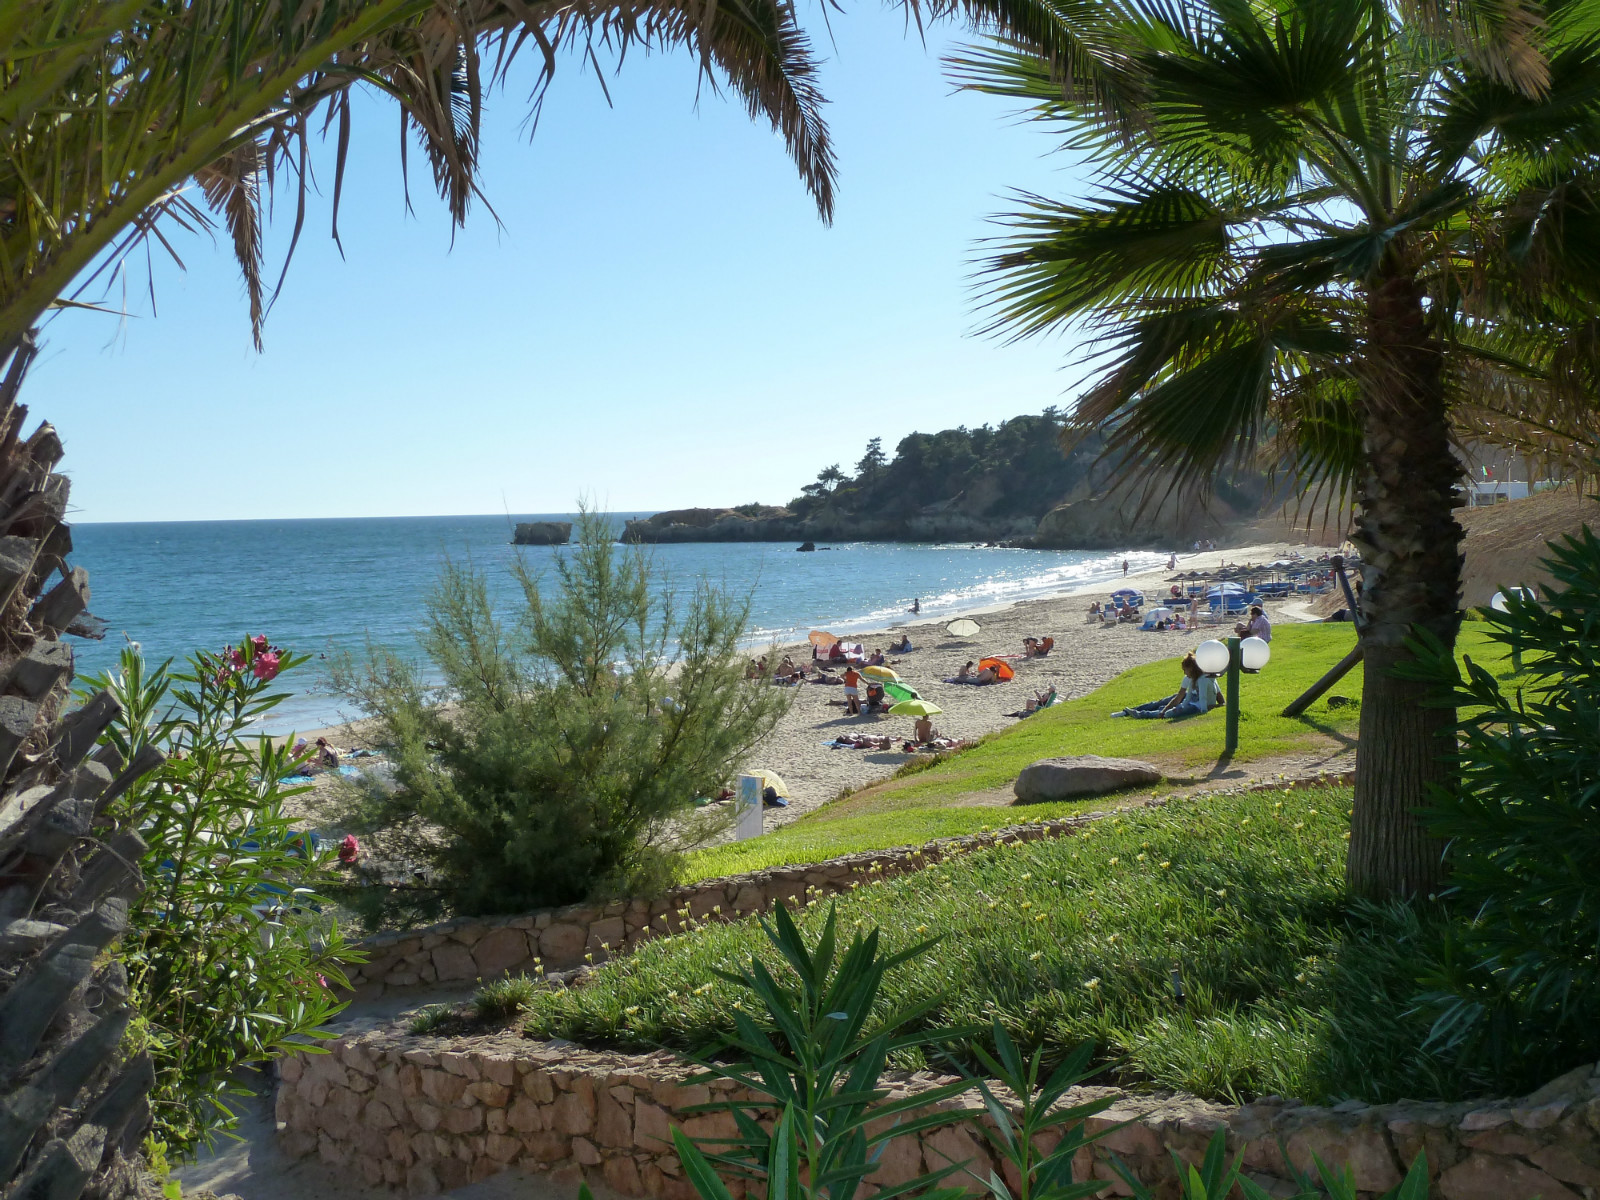 Santa Eulalia Beach. Going west. Located after Club Med's Maria Luisa Beach 4 km